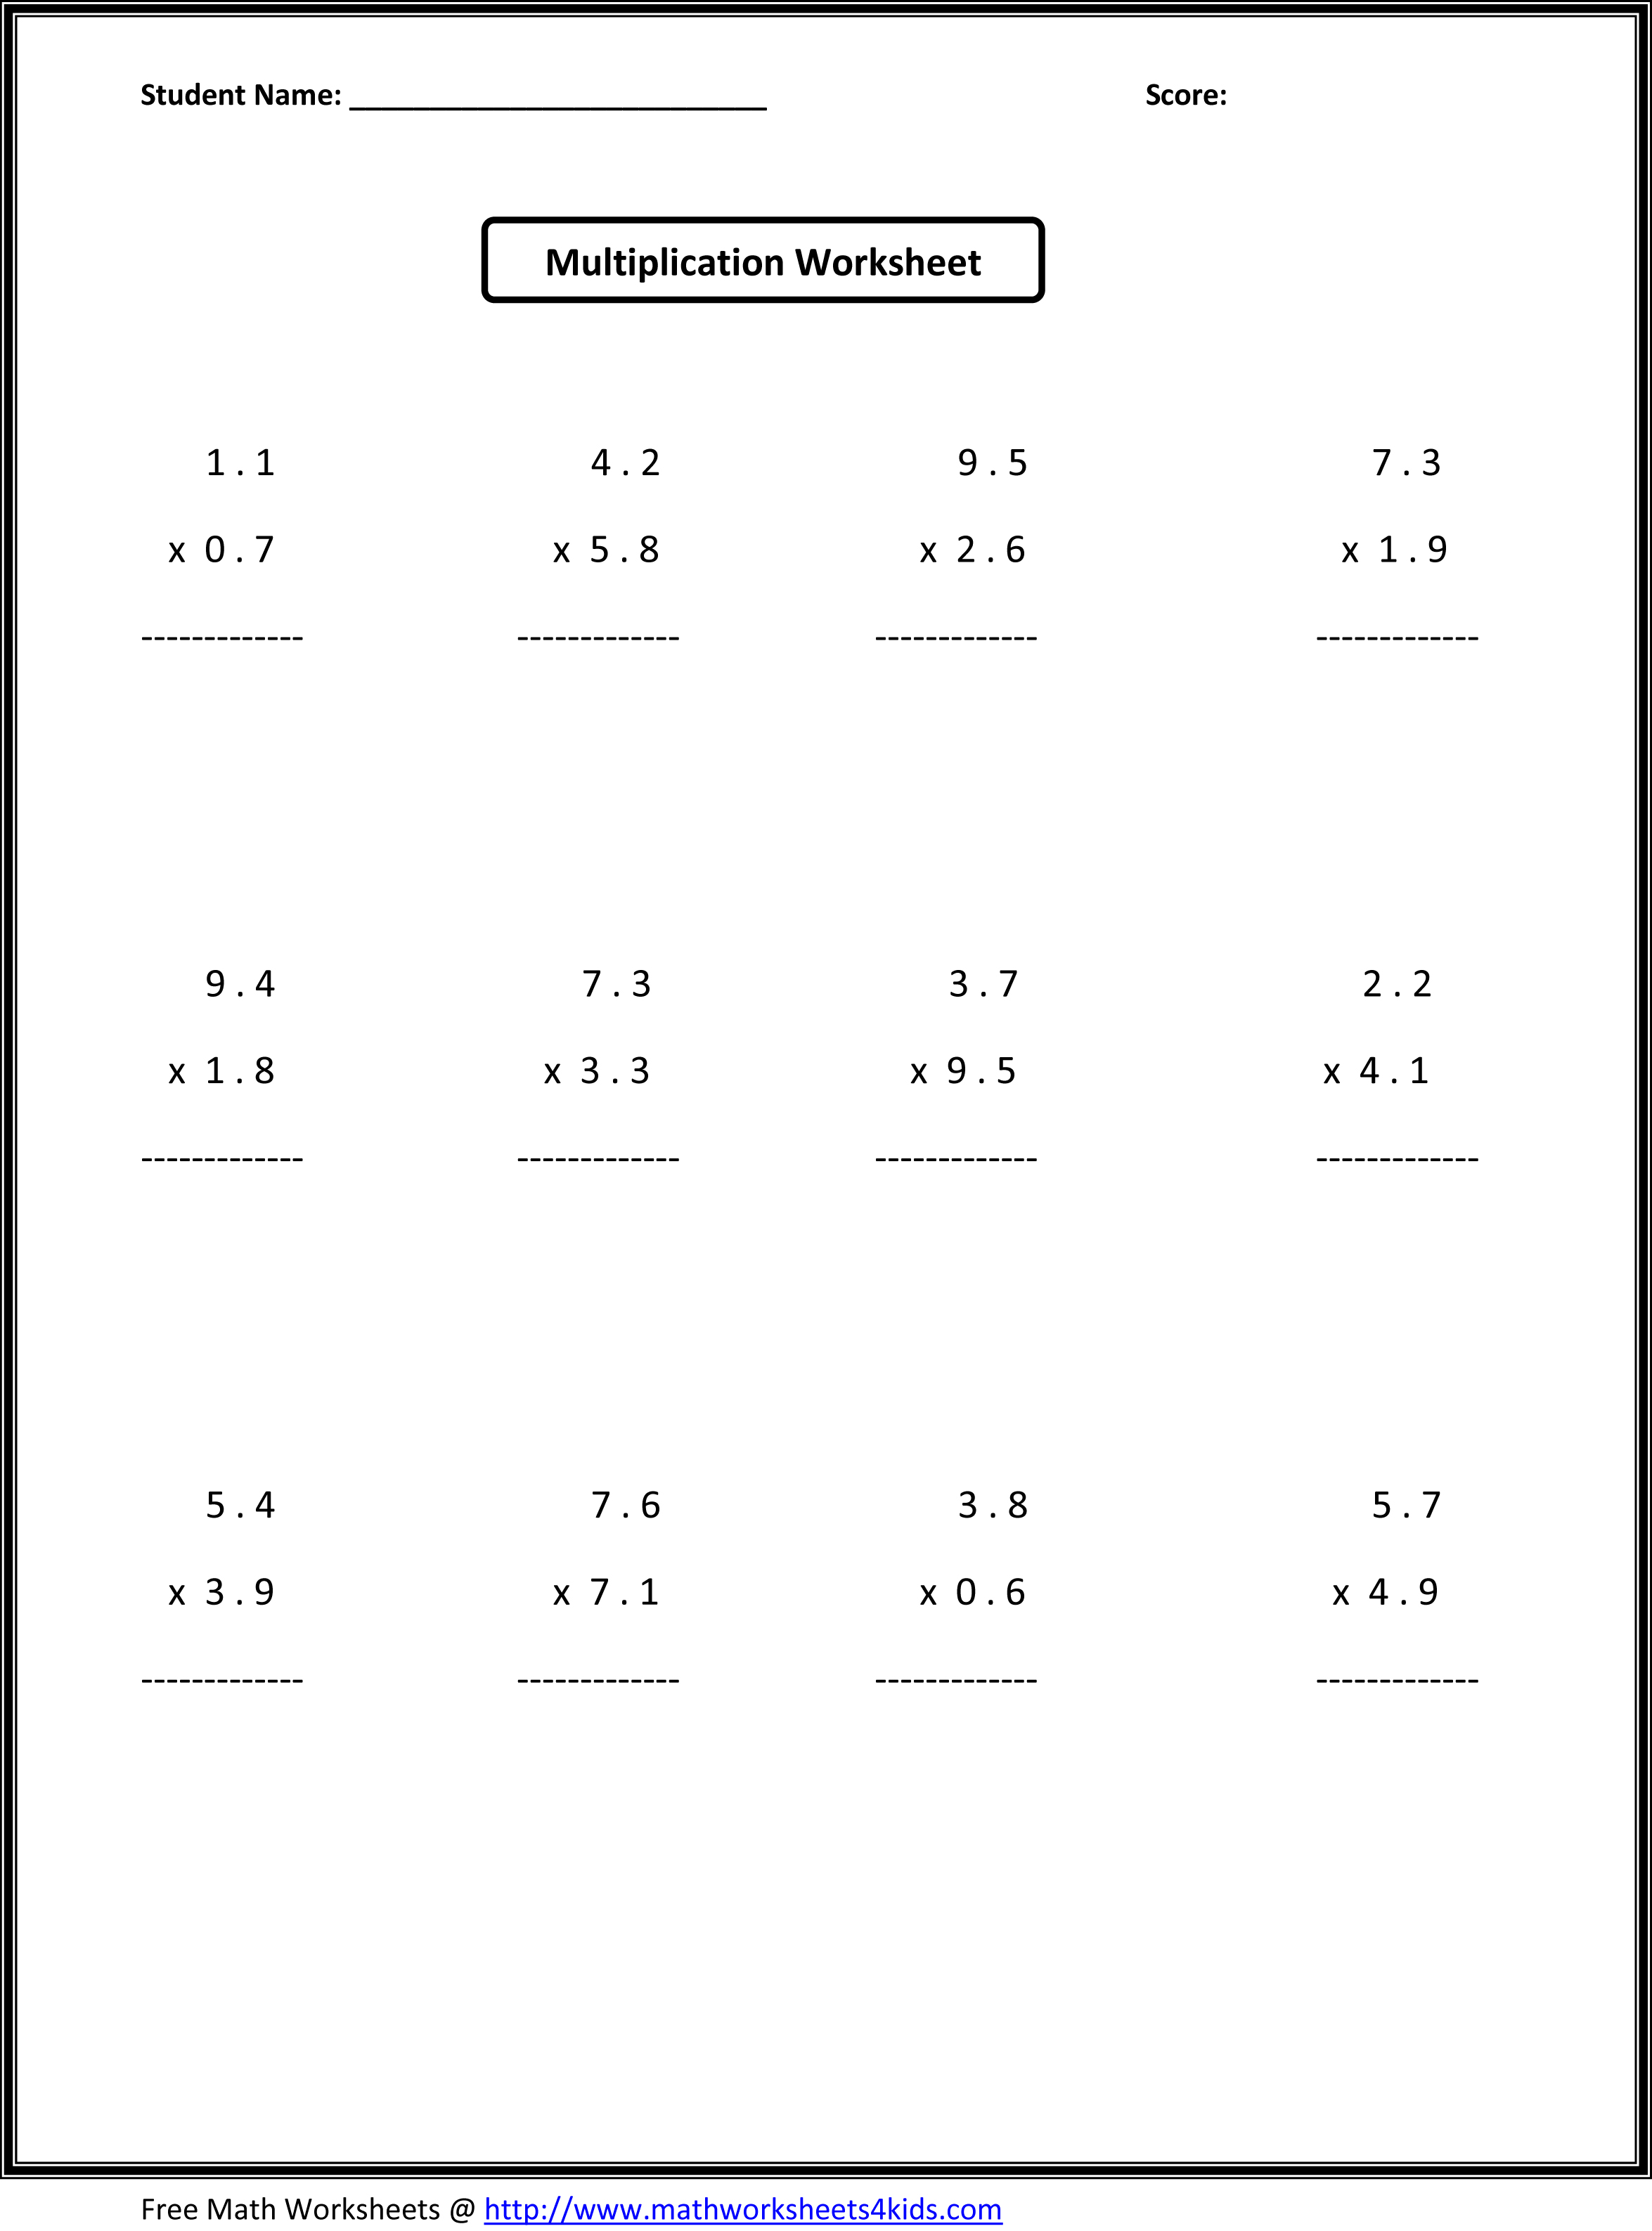 Printables Math Worksheets For 6th Grade Free Printable printable worksheet for 6th grade math html standard 7th worksheets curriculum based